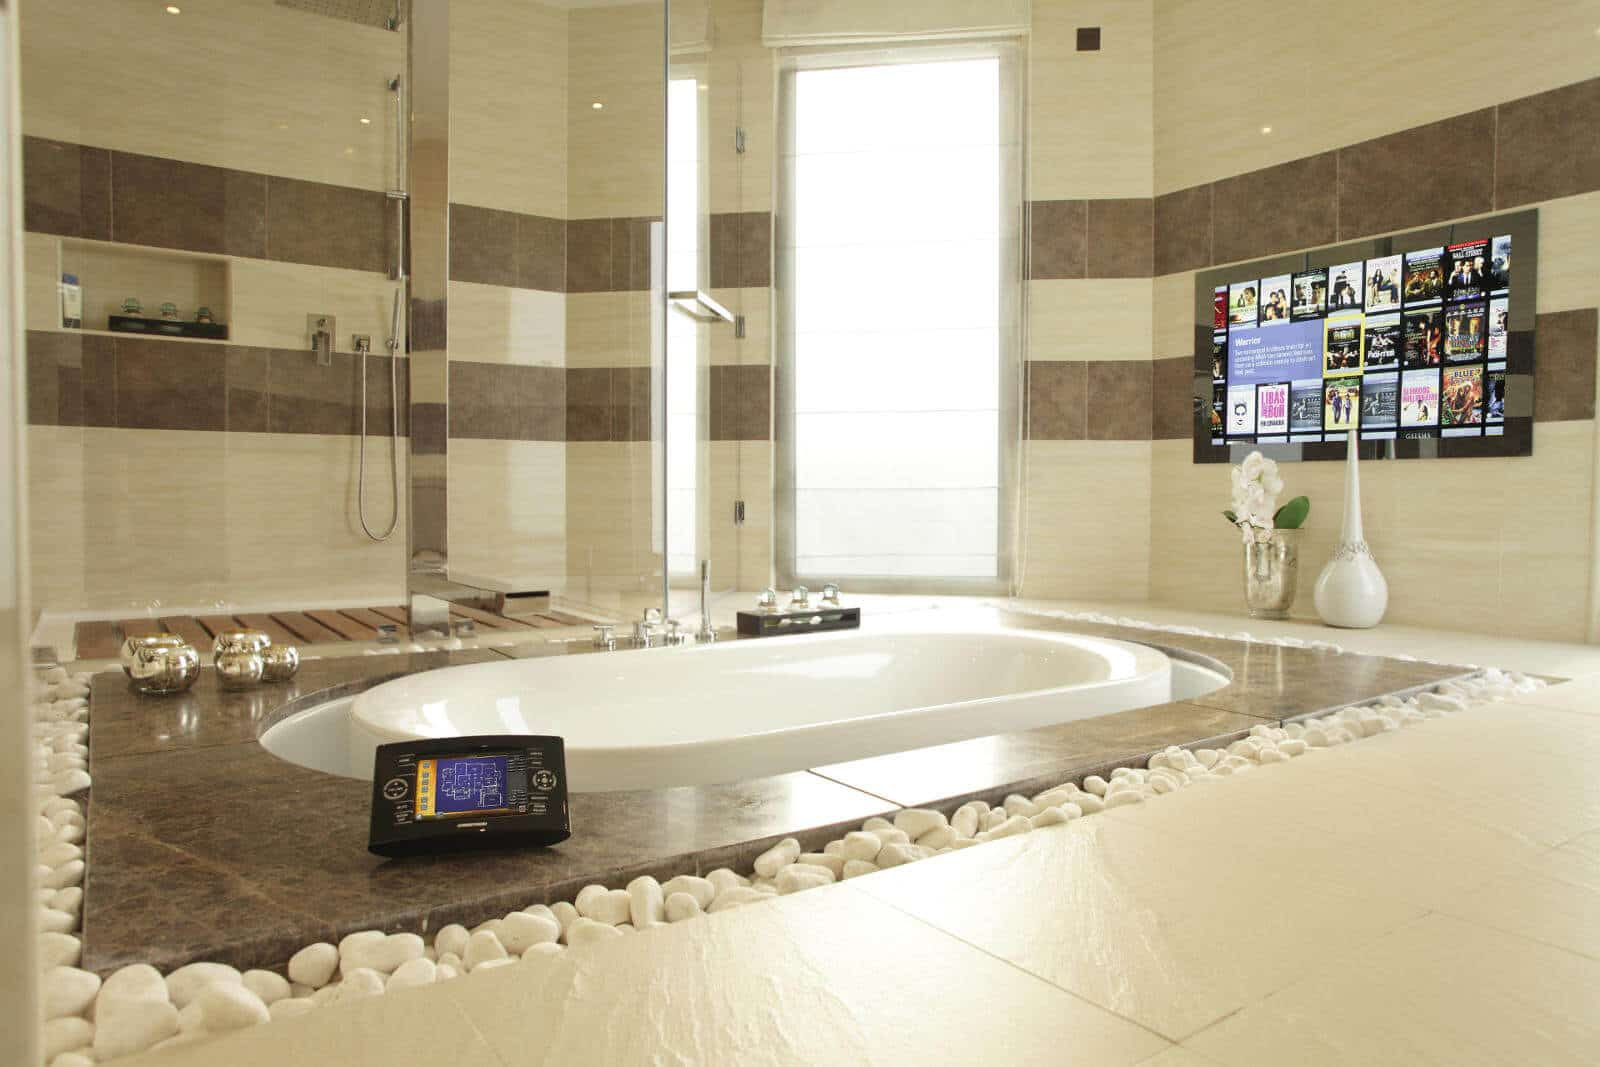 Crestron Touchpanel Controlling Bathroom with Mirror TV